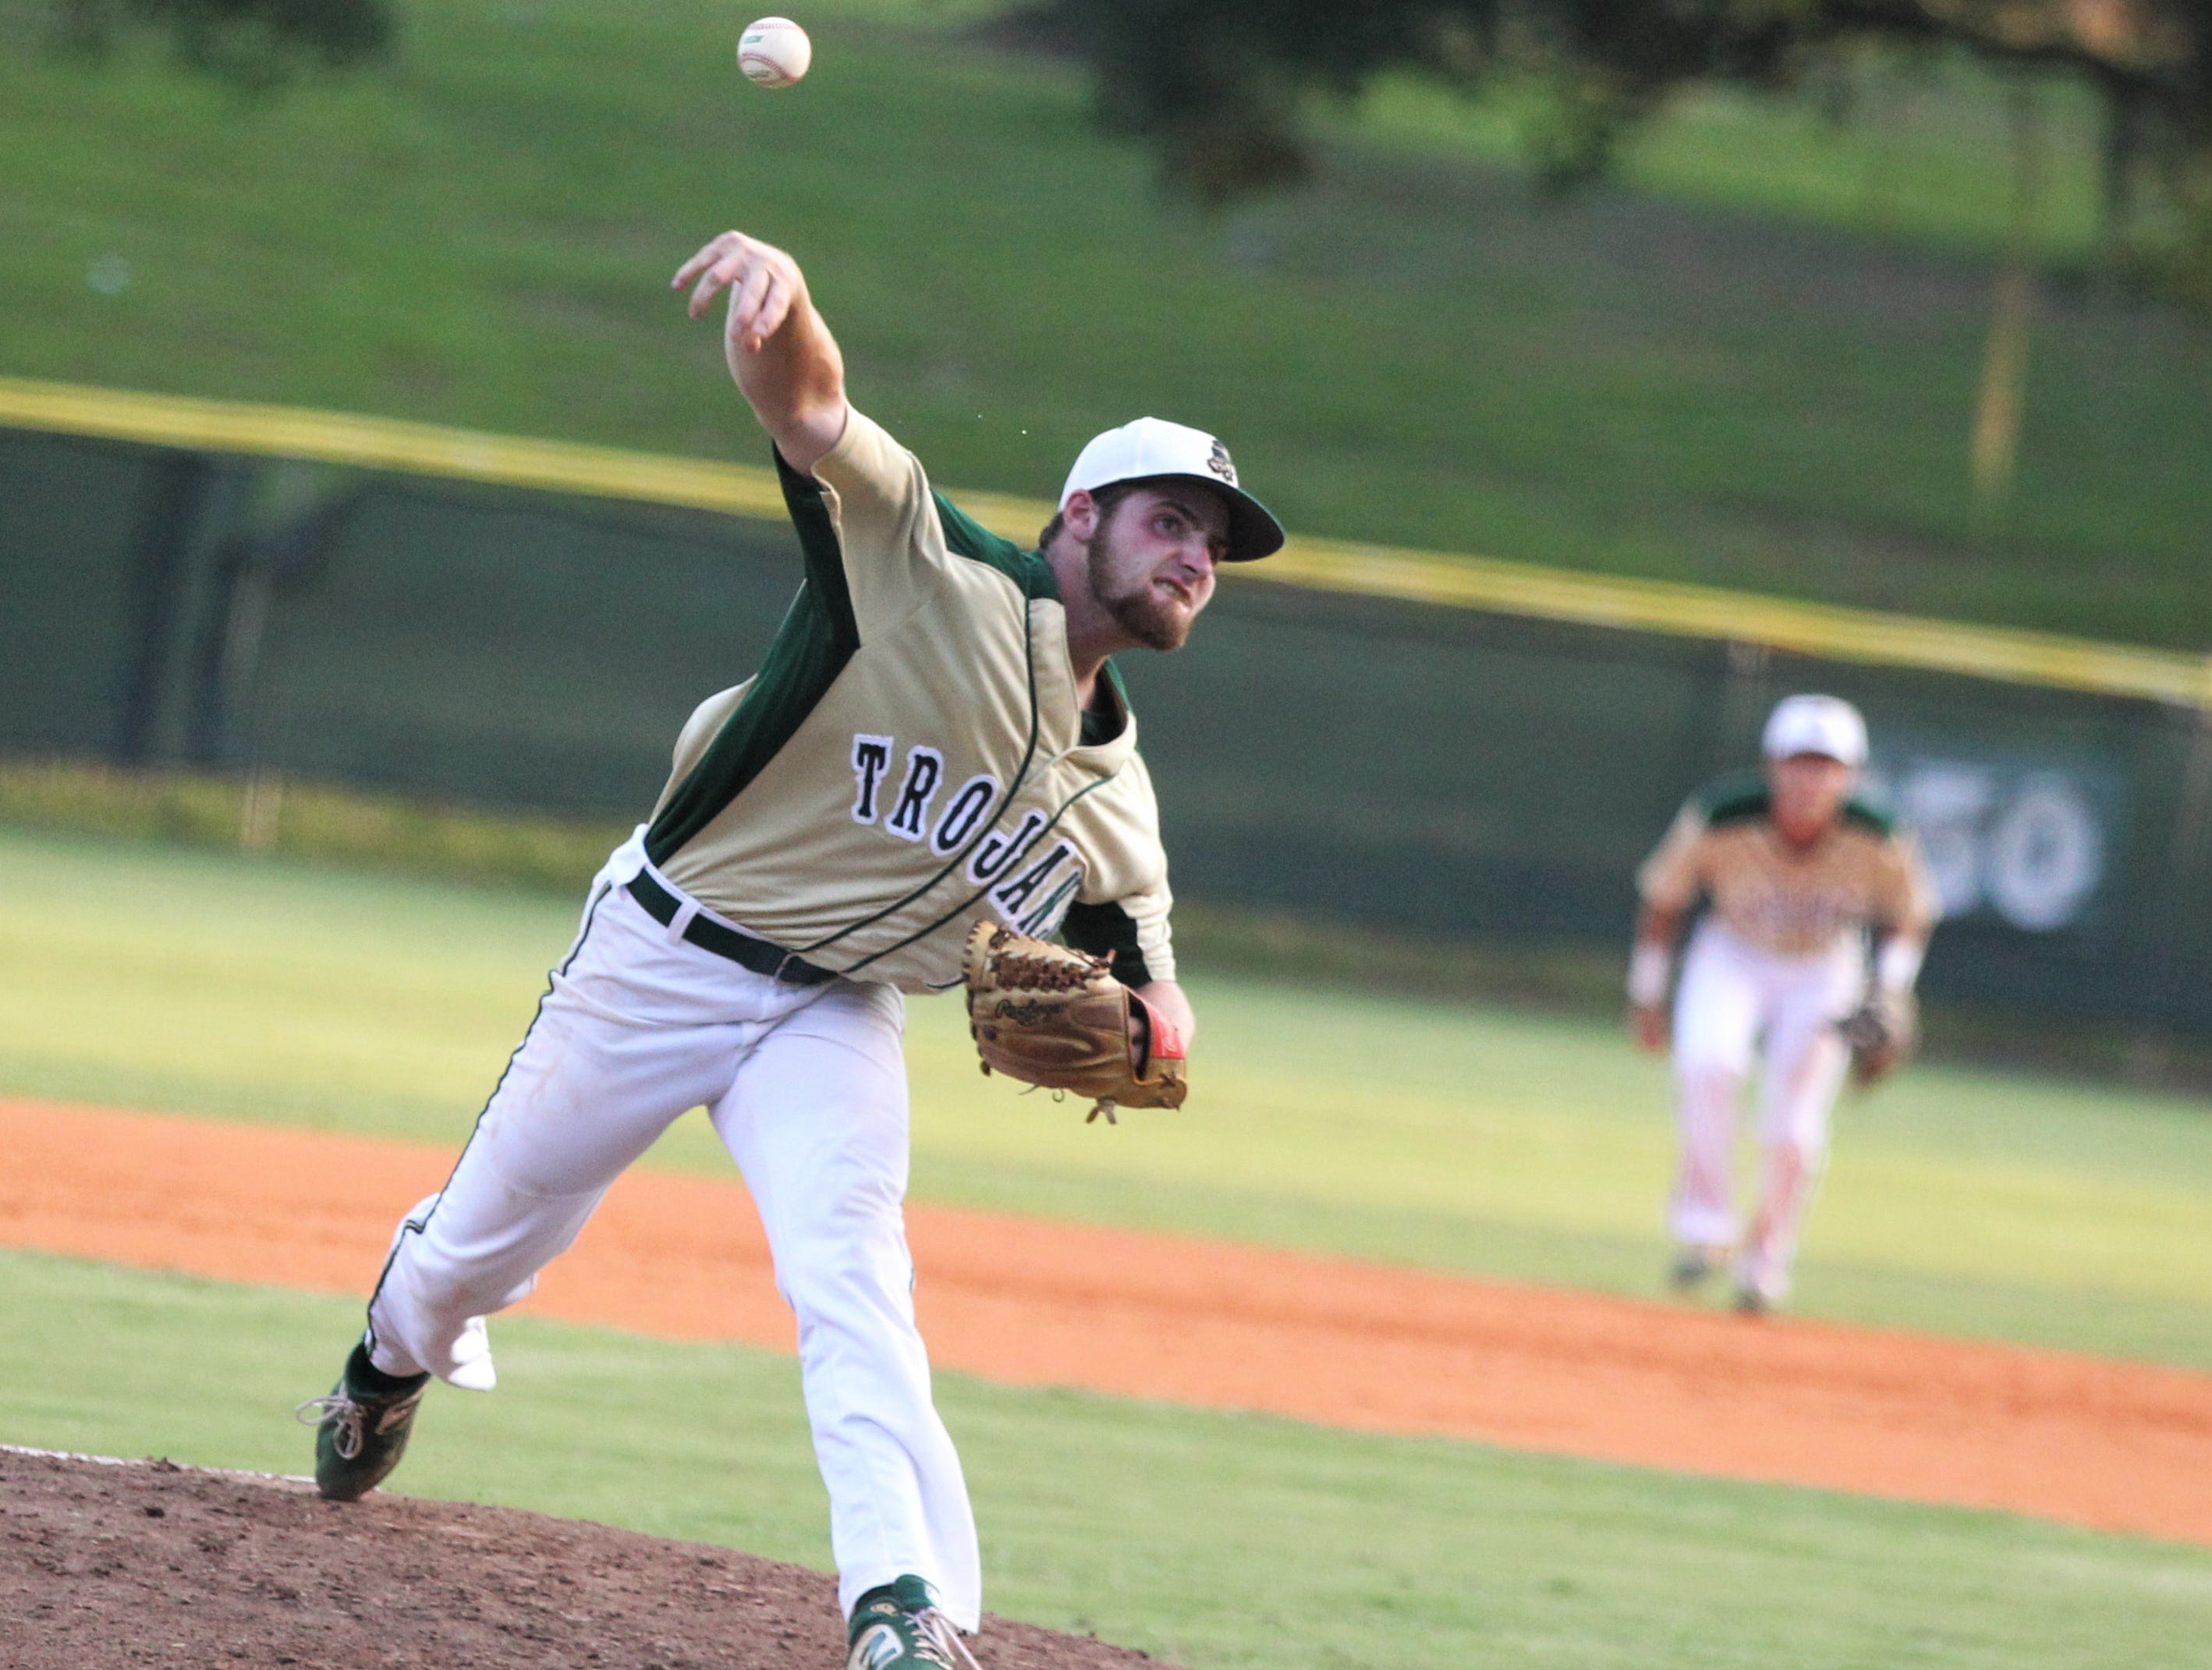 Lincoln senior Nick Ferrara pitches as Lincoln baseball beat Chiles 5-4  in 10 innings during a District 2-8A championship game on Thursday, May 9, 2019.